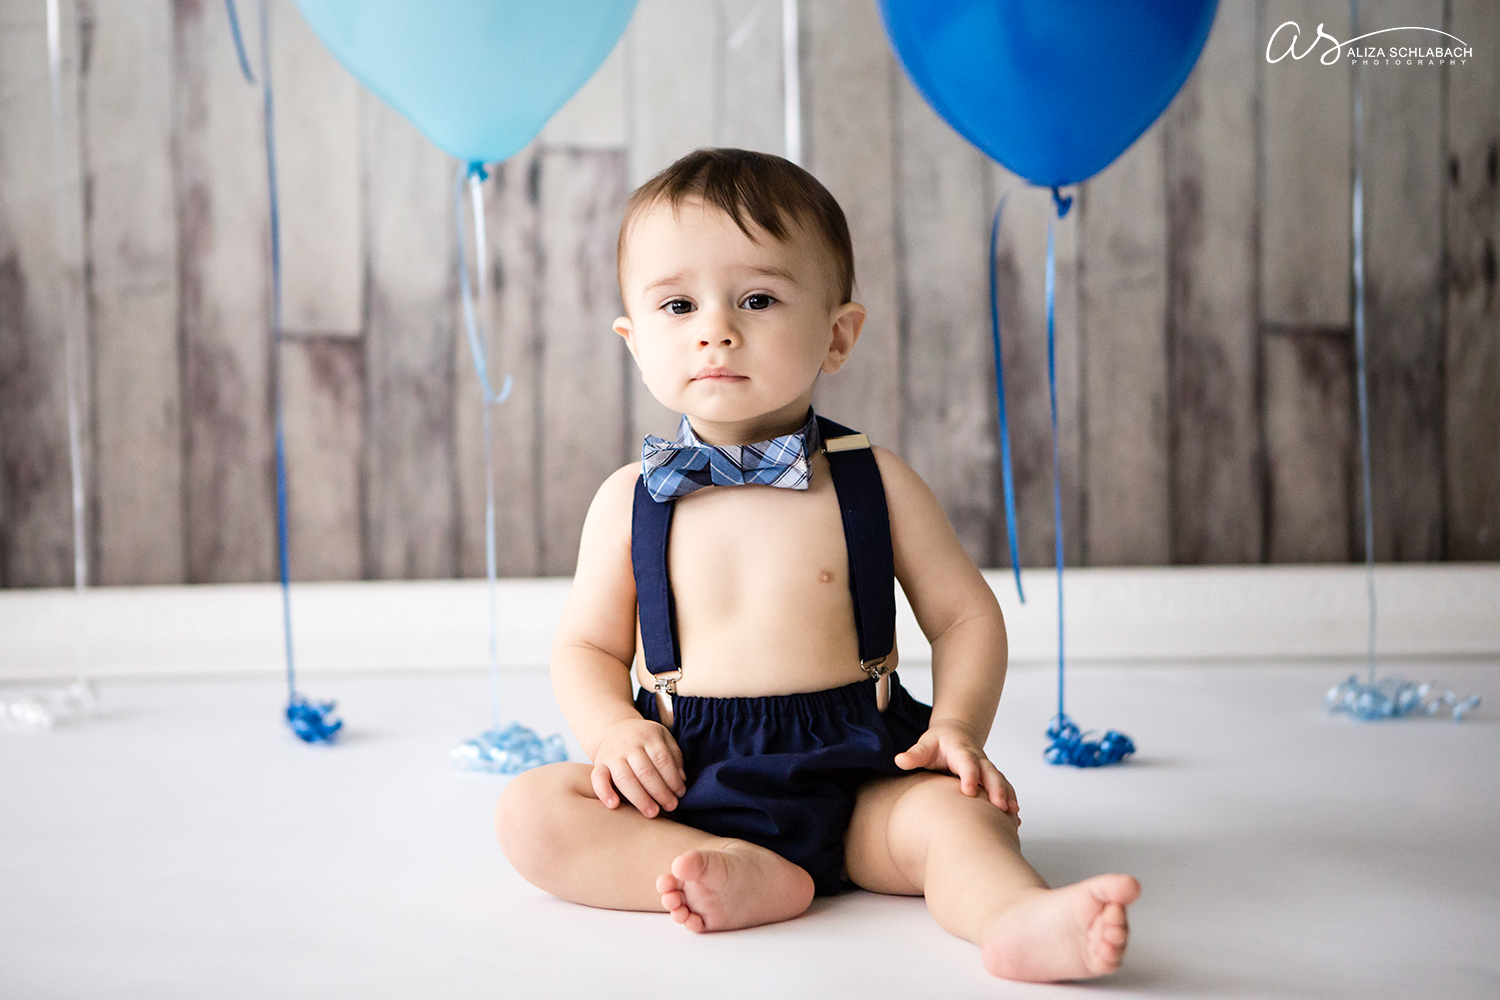 Photo of a baby in a bowtie during his cake smash photography session